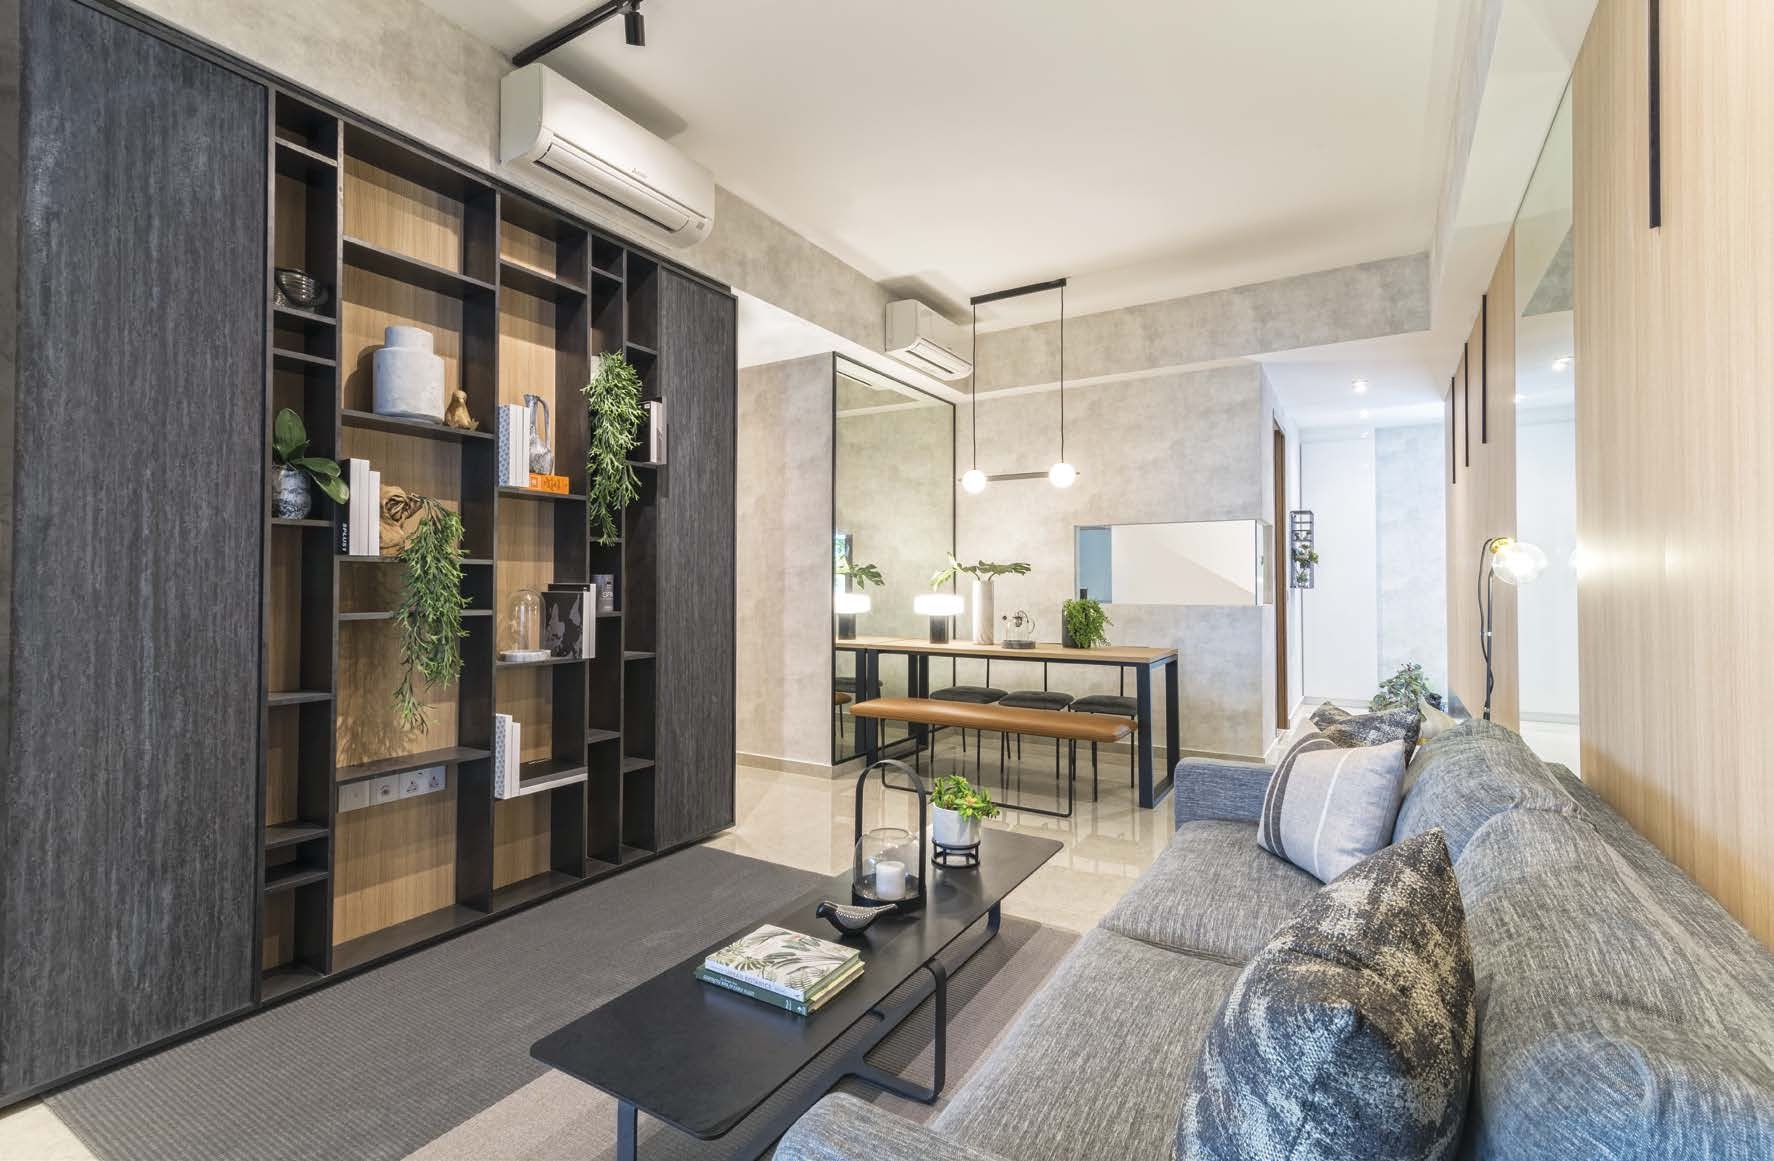 The North Gaia Showflat Can Take Inspiration from Parc Botannia